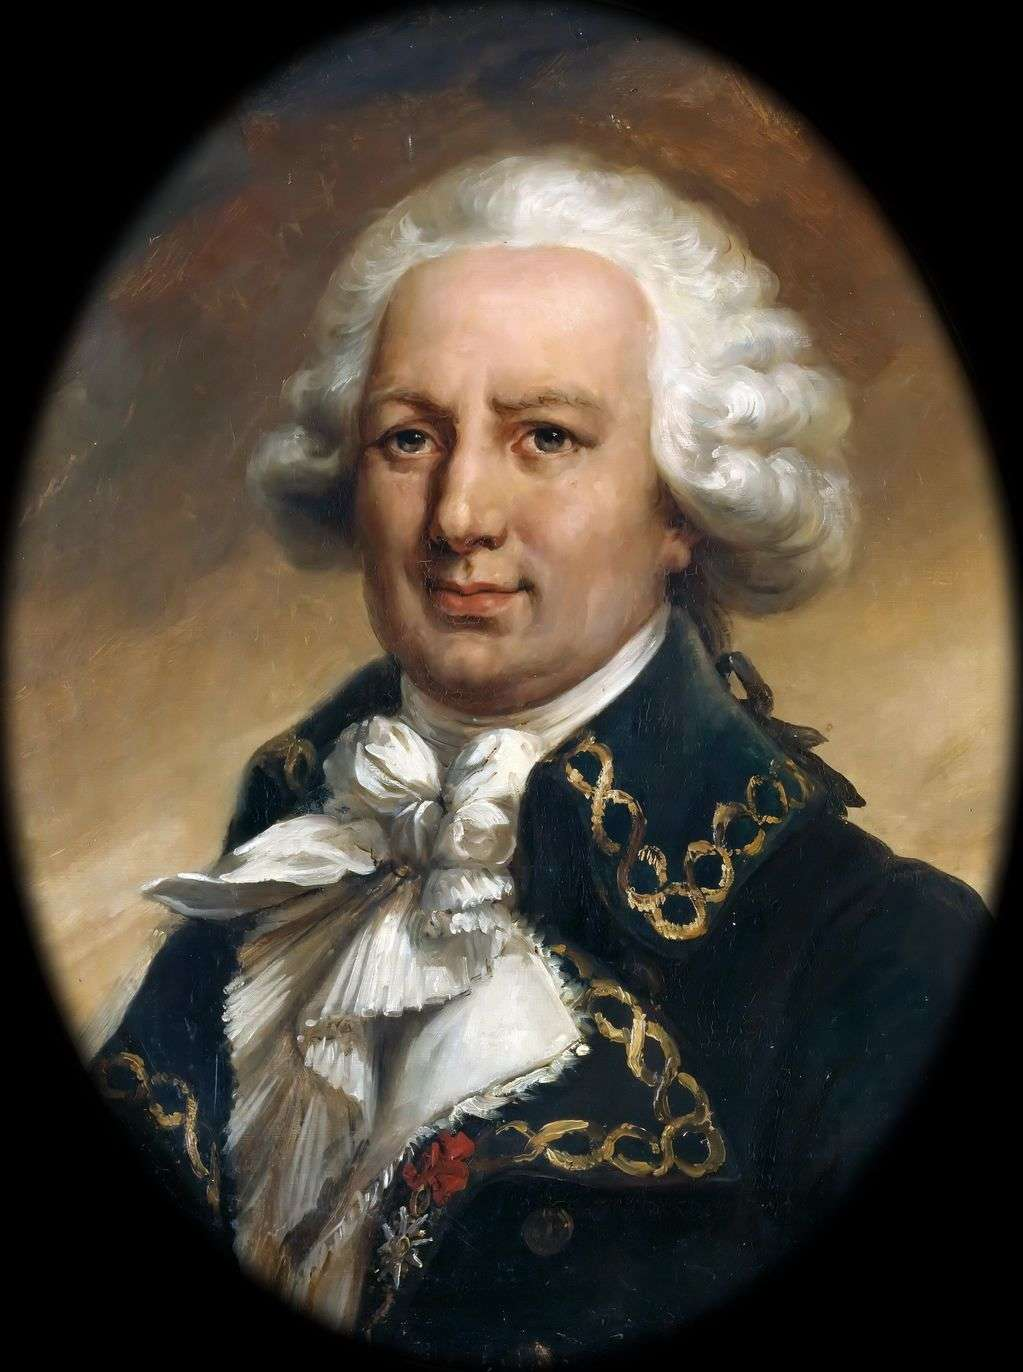 Louis-Antoine de Bougainville, the expedition leader who would become an unlikely ally to Jeanne